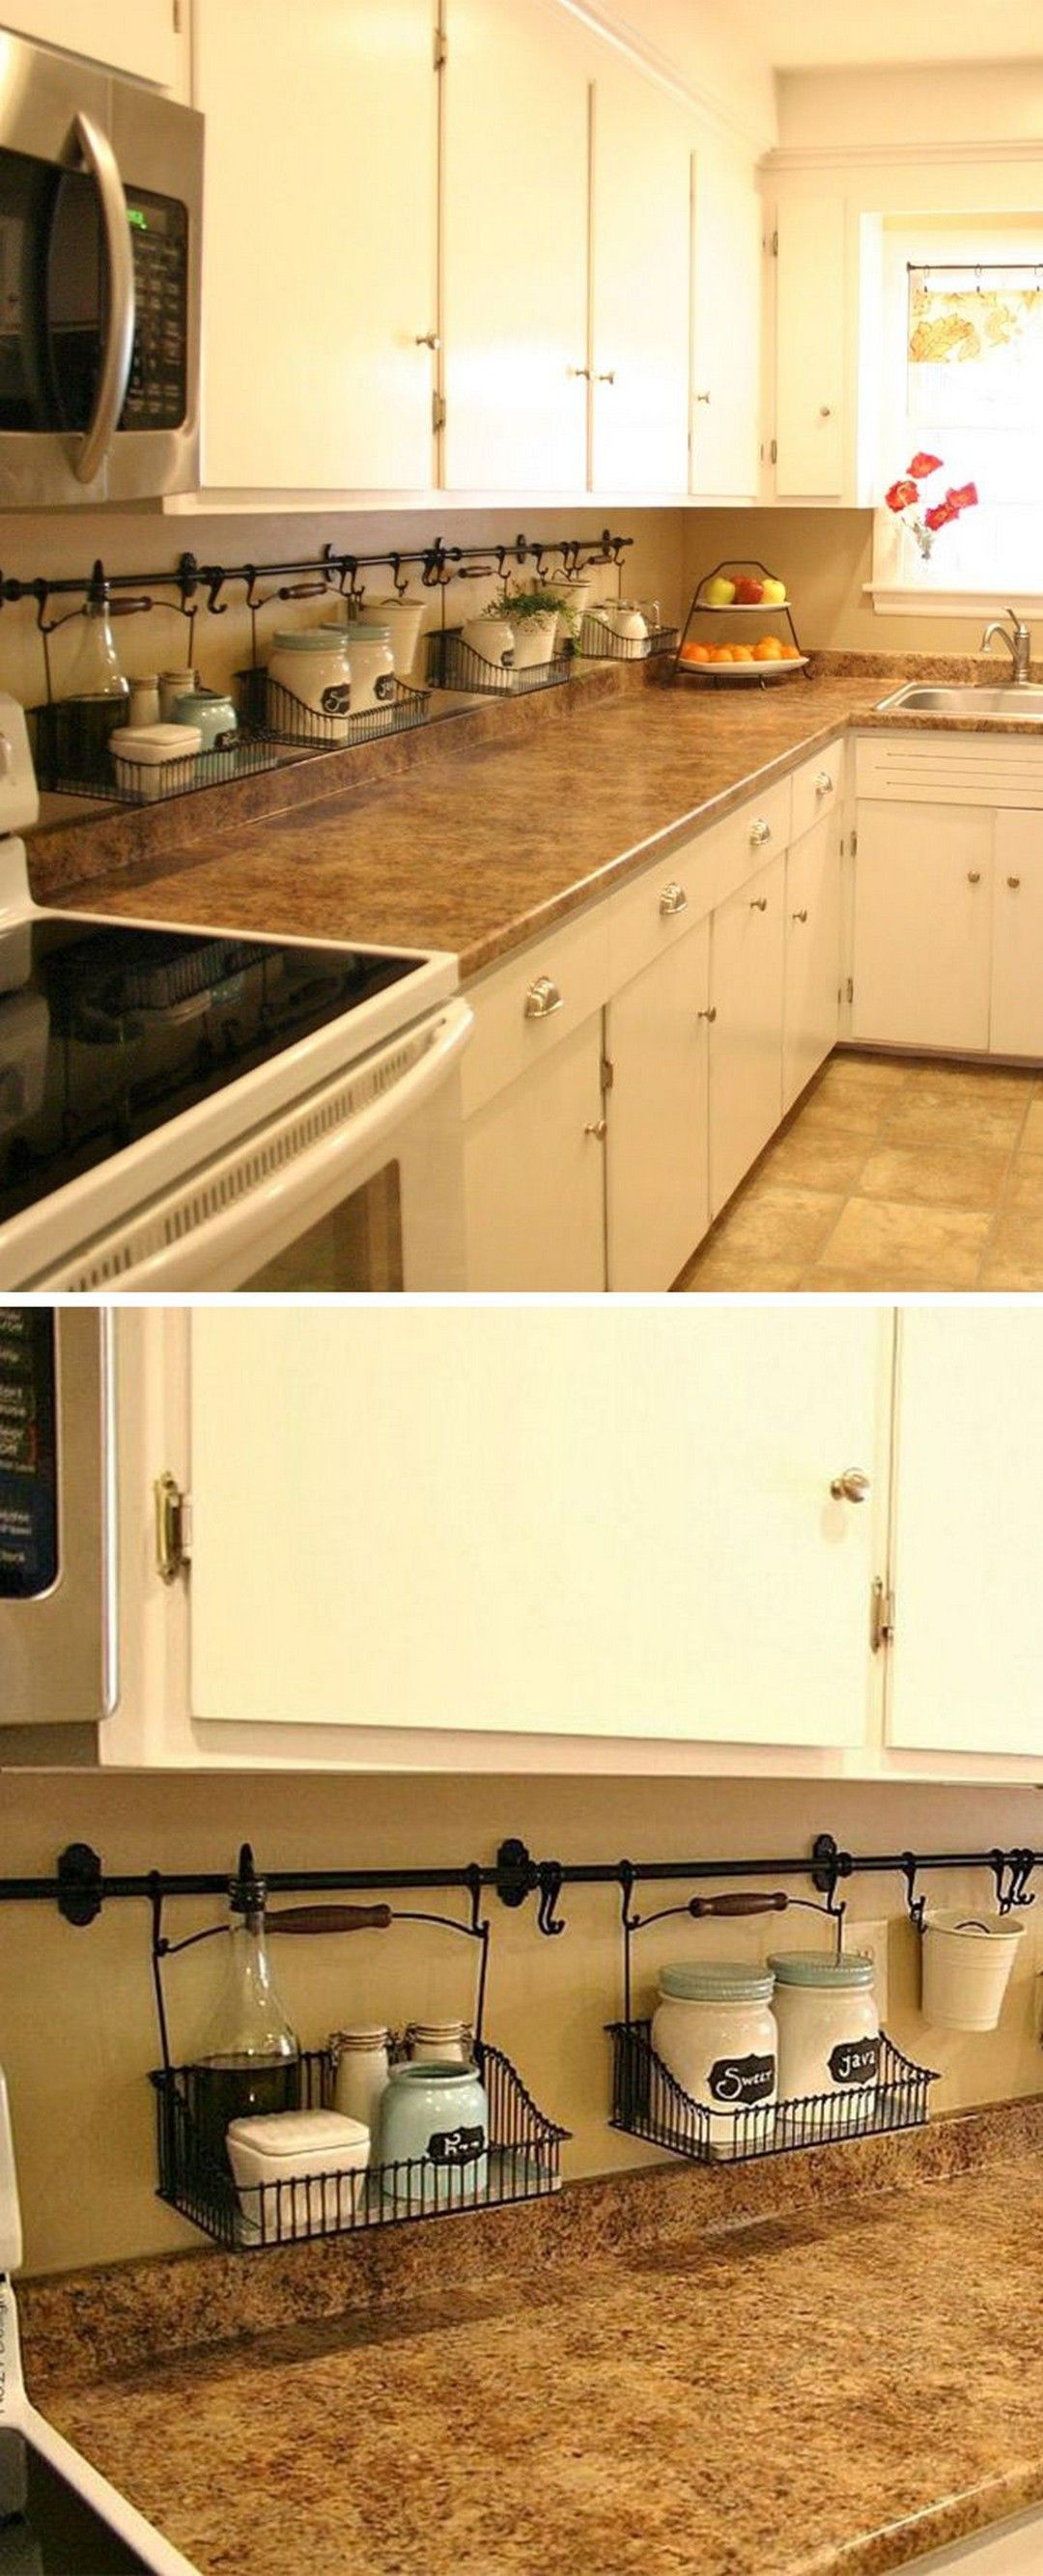 20 DIY Kitchen Organization And Storage Hacks Ideas (17